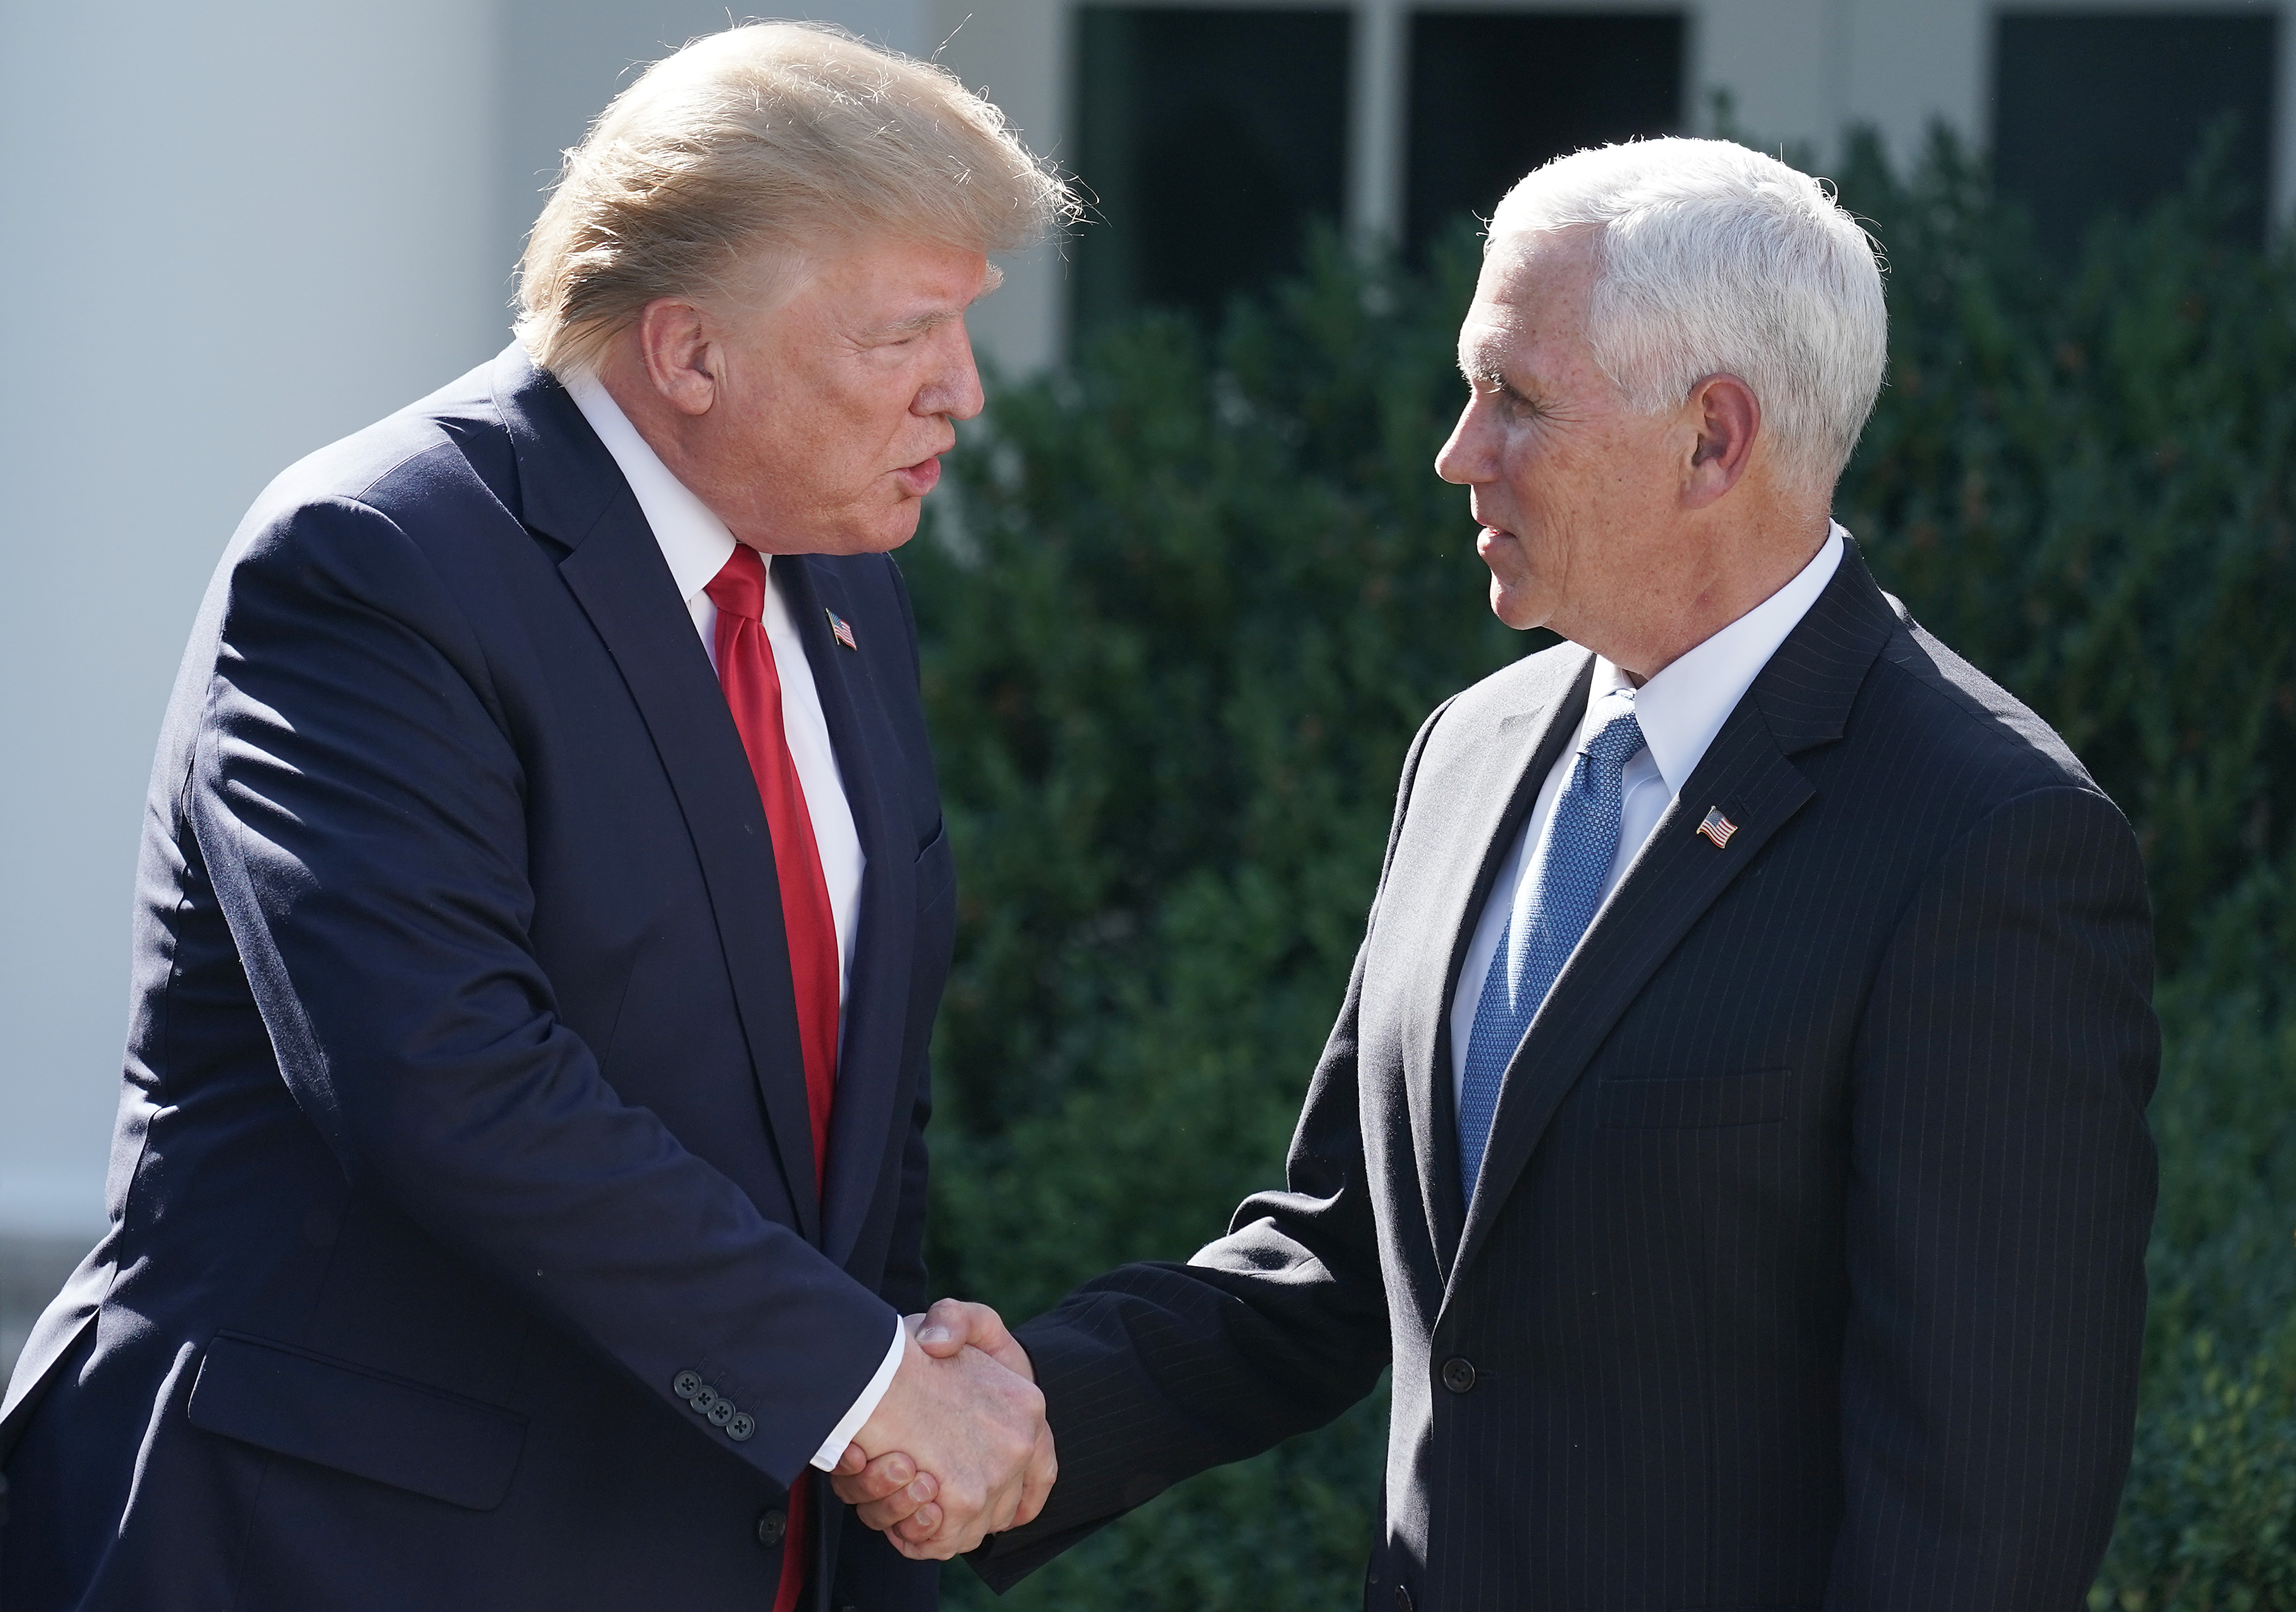 Trump denies he suggested Pence stay at his Irish country club